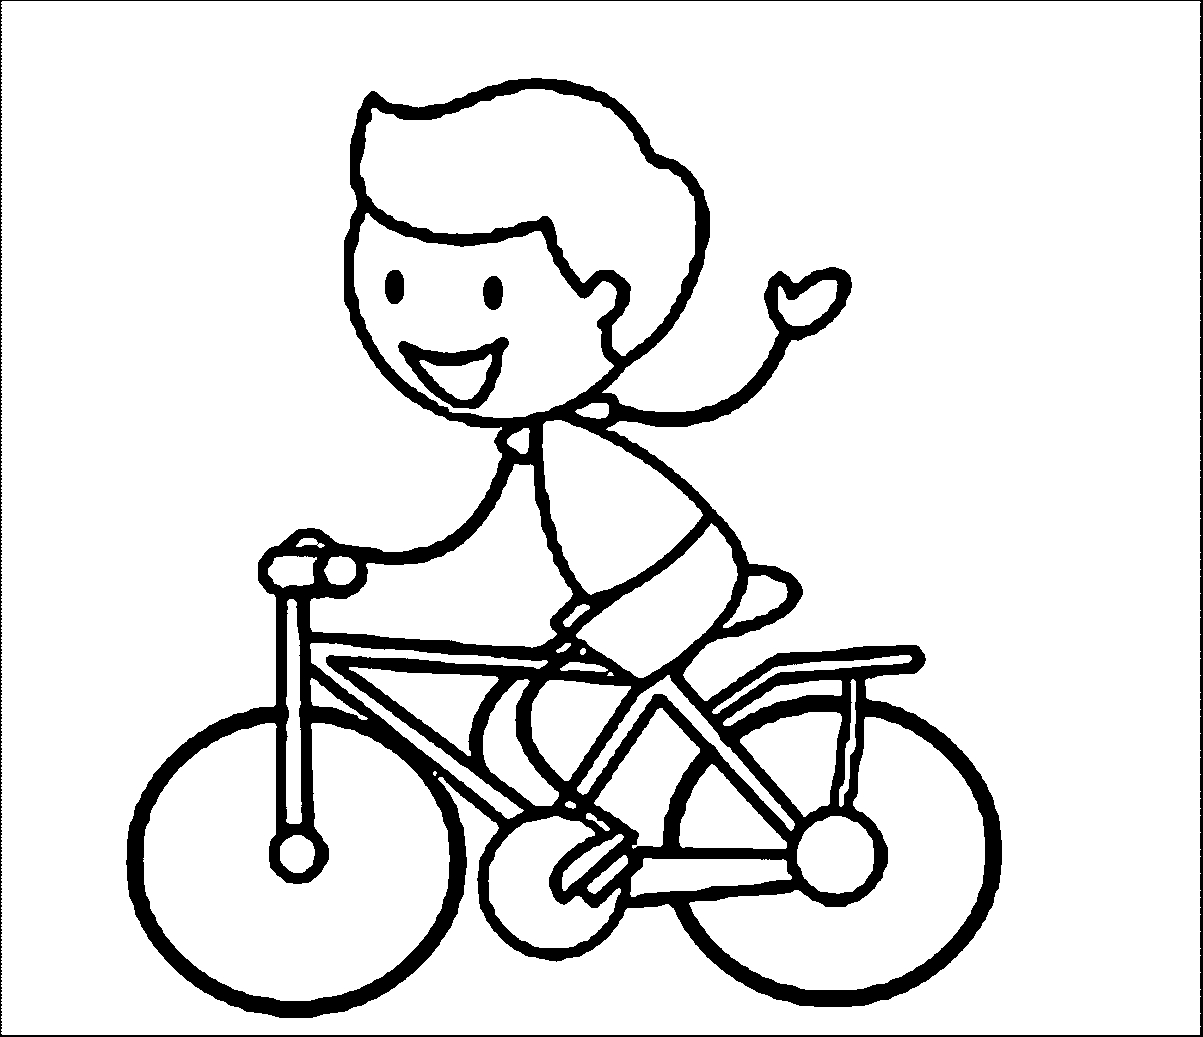 bike coloring pages - bike riding coloring page